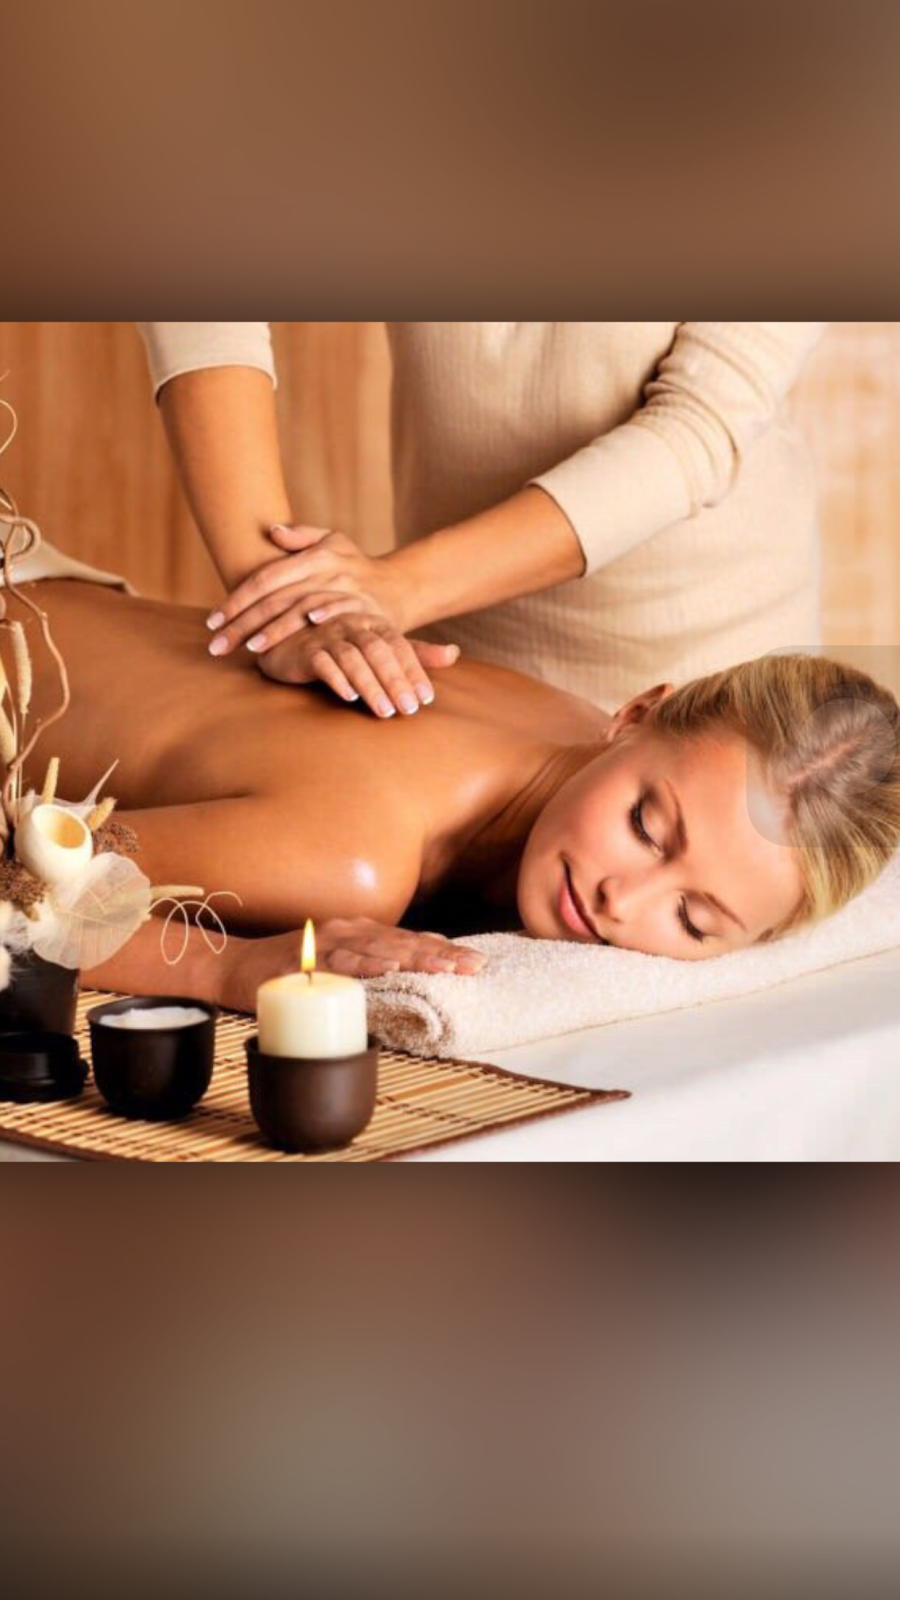 Royal Foot Spa - spa  | Photo 5 of 10 | Address: 1108 N Greenville Ave Suite 125, Allen, TX 75002, USA | Phone: (972) 649-4685